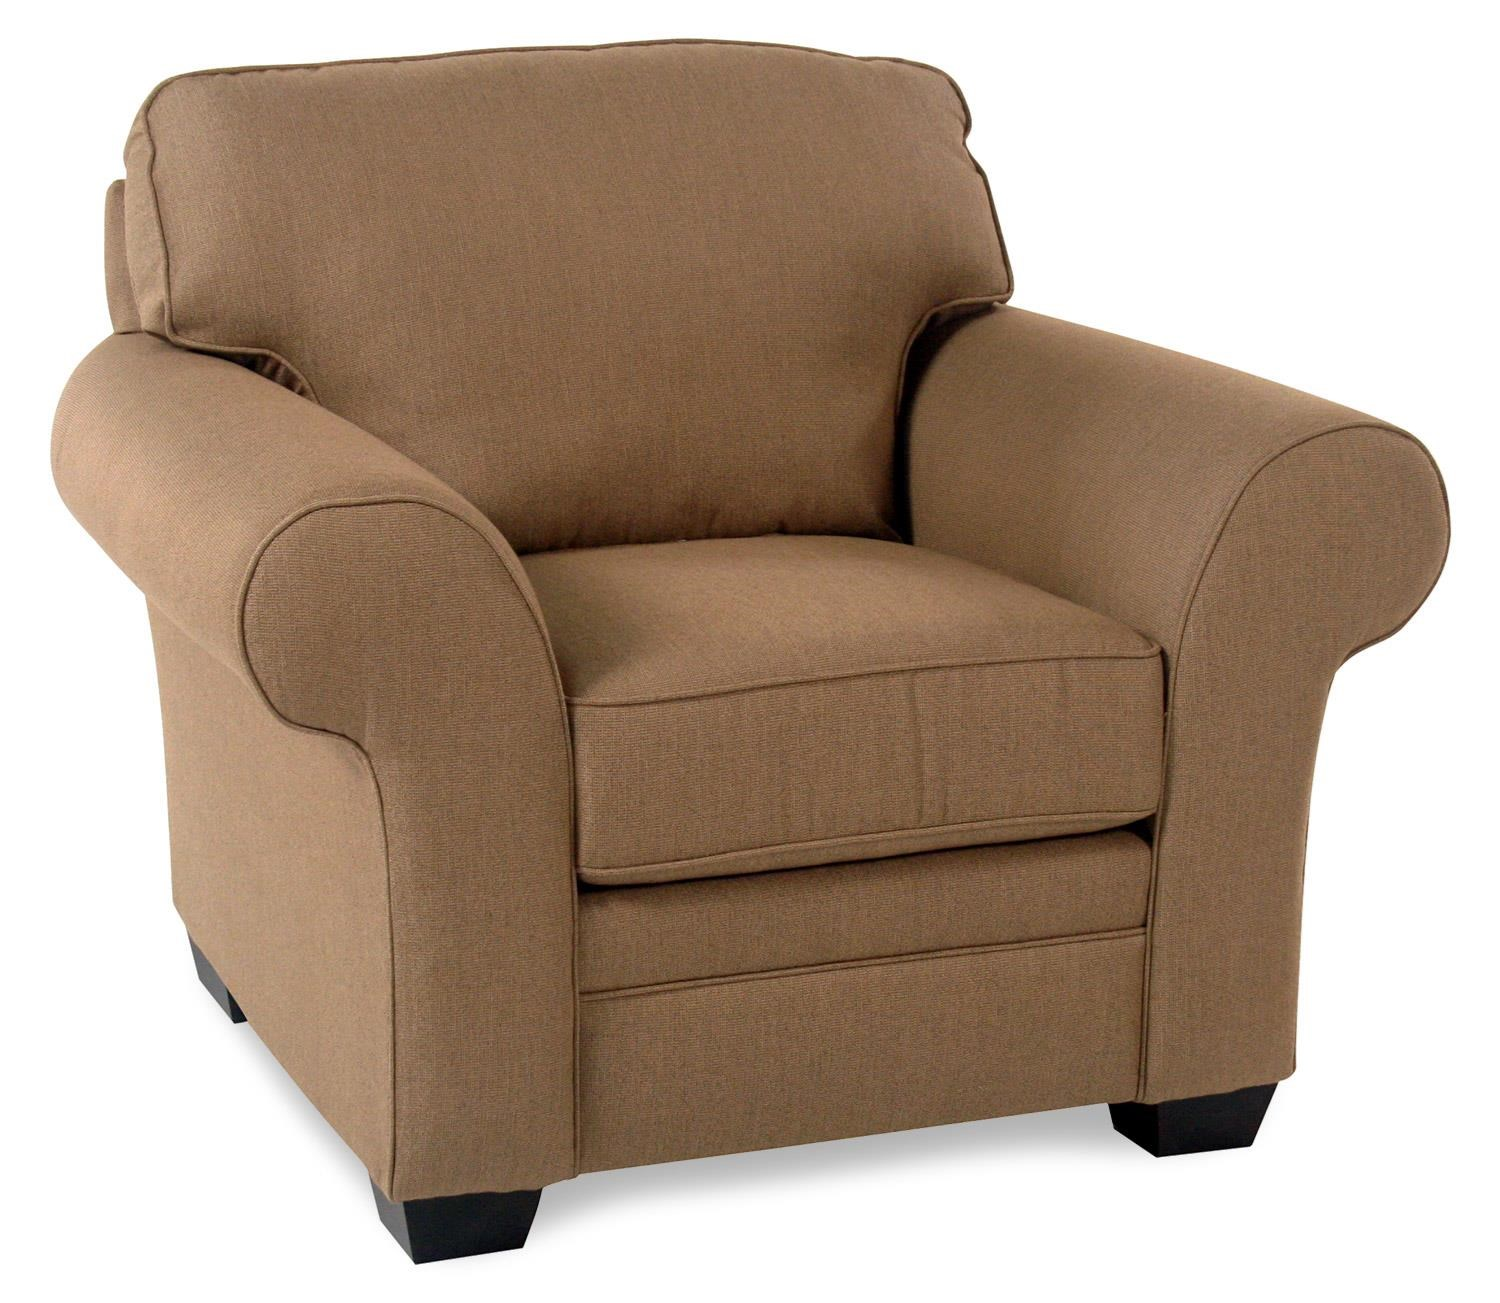 Broyhill Furniture Lagoona Roll Arm Chair - Item Number: S7902-0-44282-0008